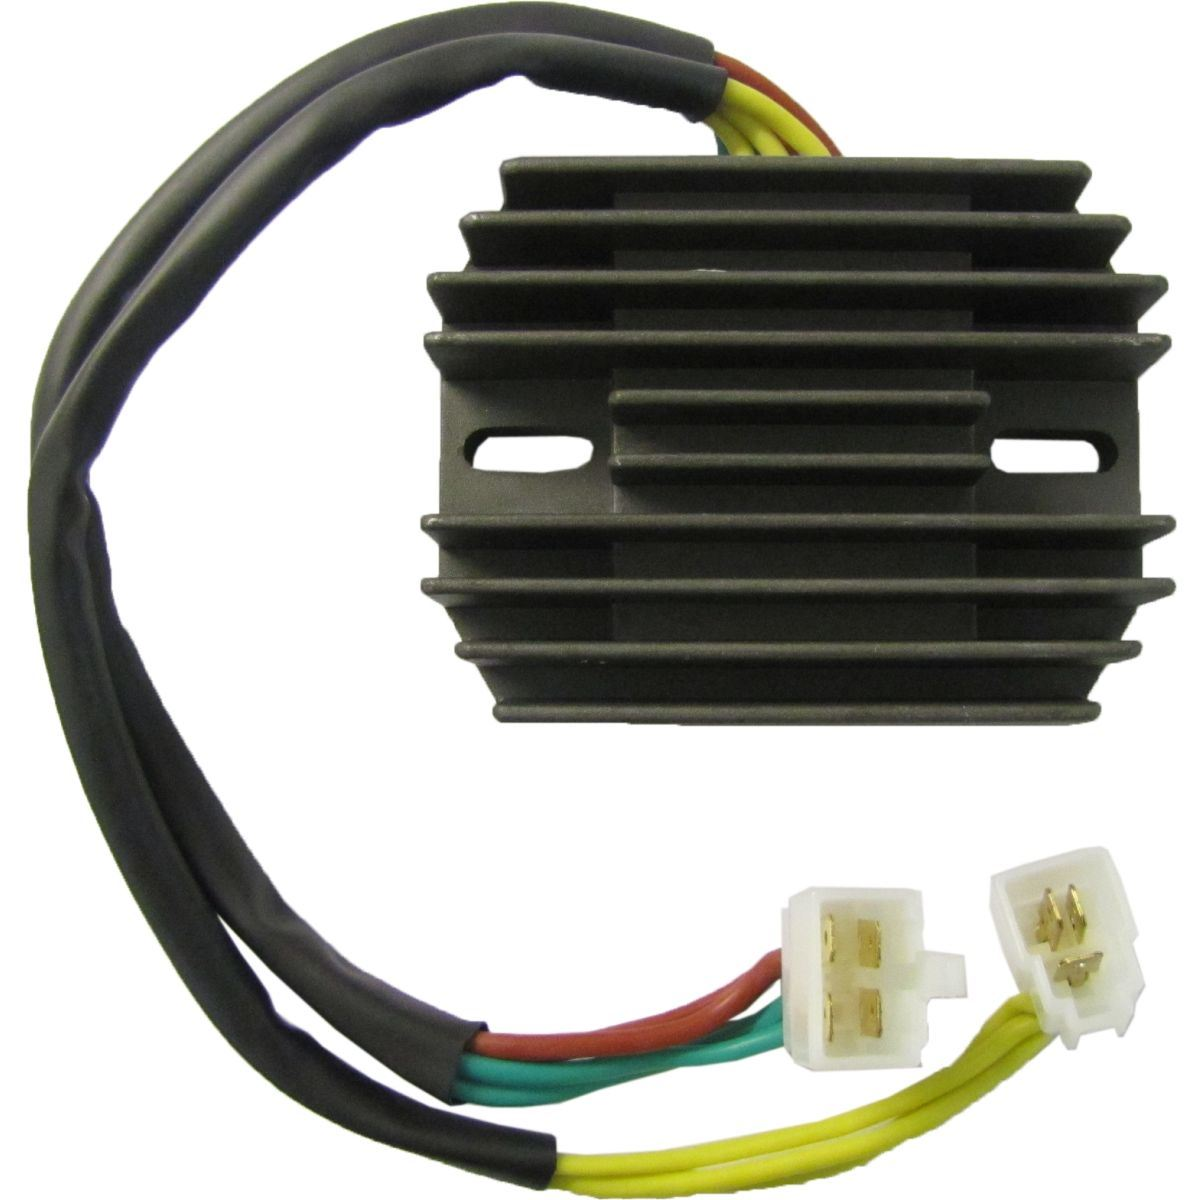 Honda Regulator Rectifier Wiring Electrical Diagrams Diagram Vfr750 Vf750 7 Wires Sh538d 13 Ebay Cb 750